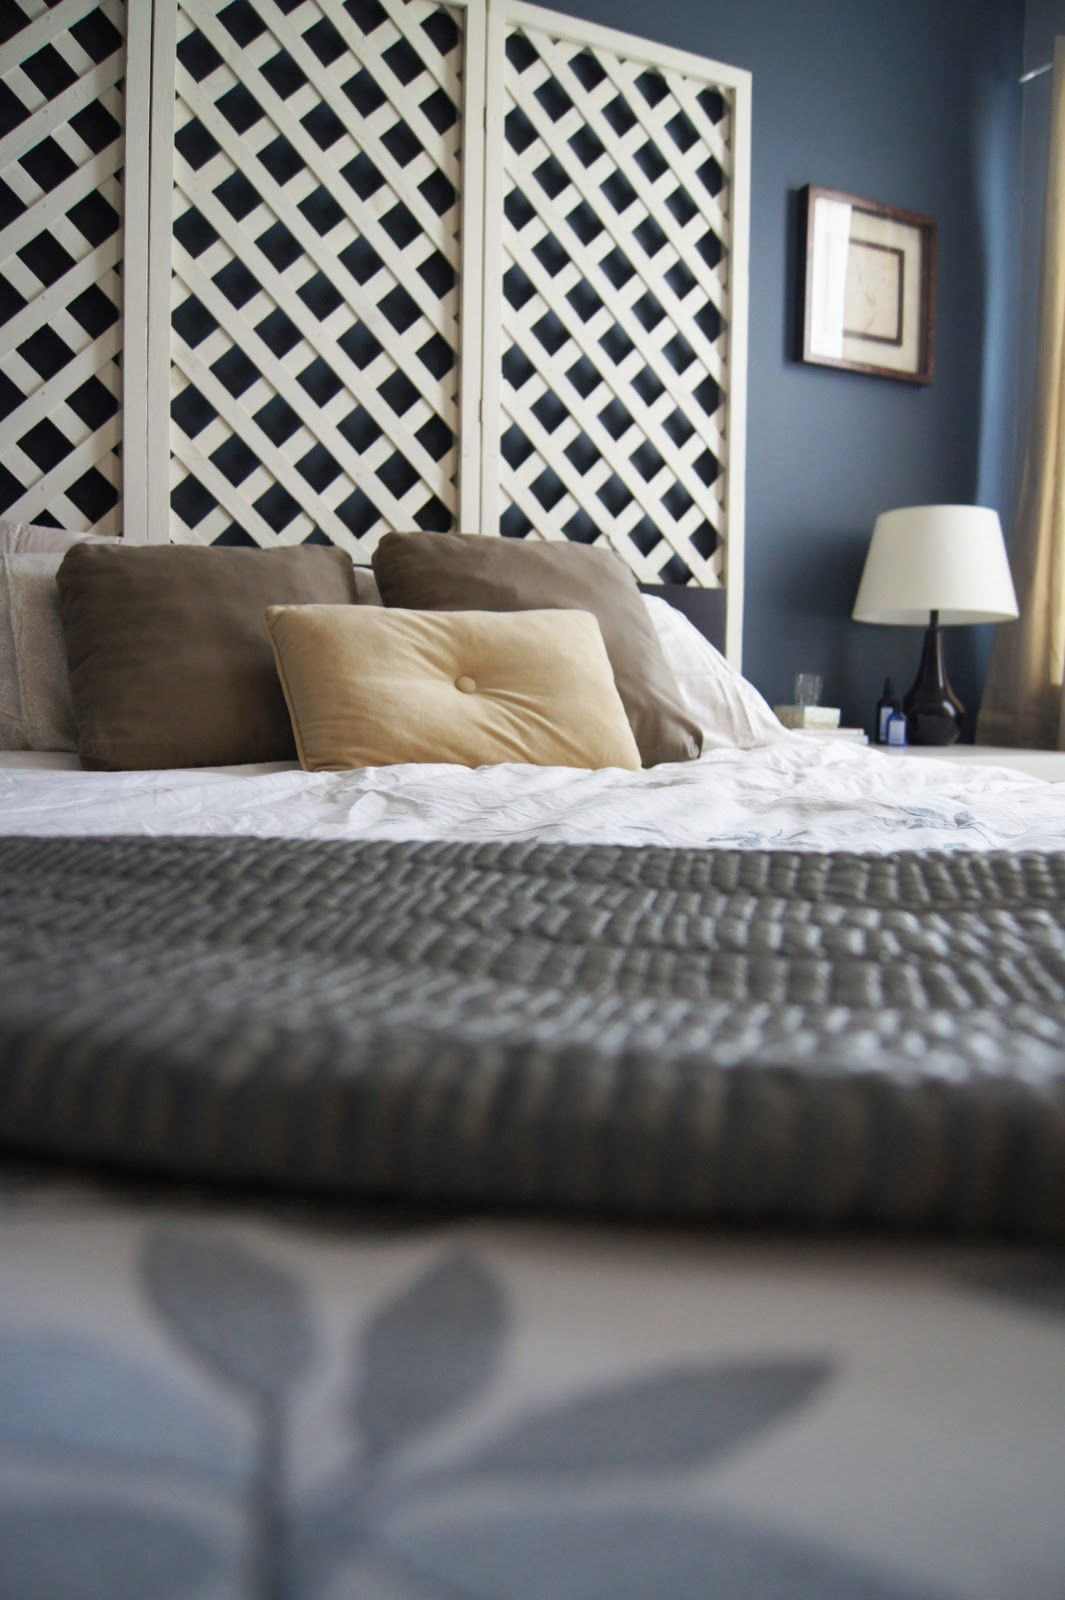 Lattice Headboard Totally Off My Line Of Thought But I Am In Love With This Lattice Headboard Bedroom Decor Home Decor